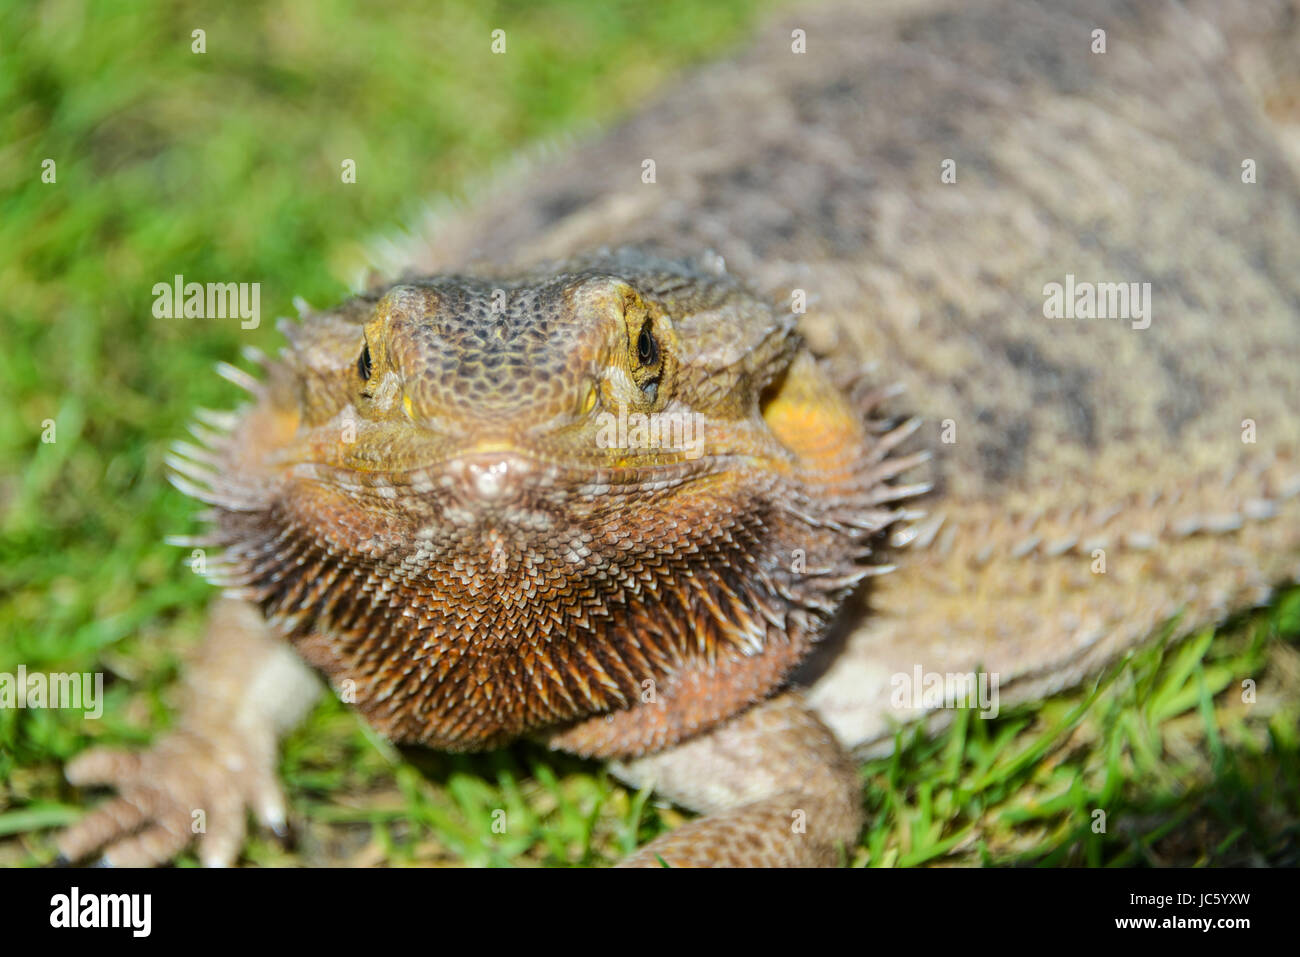 A bearded dragon basking in the sun - Stock Image